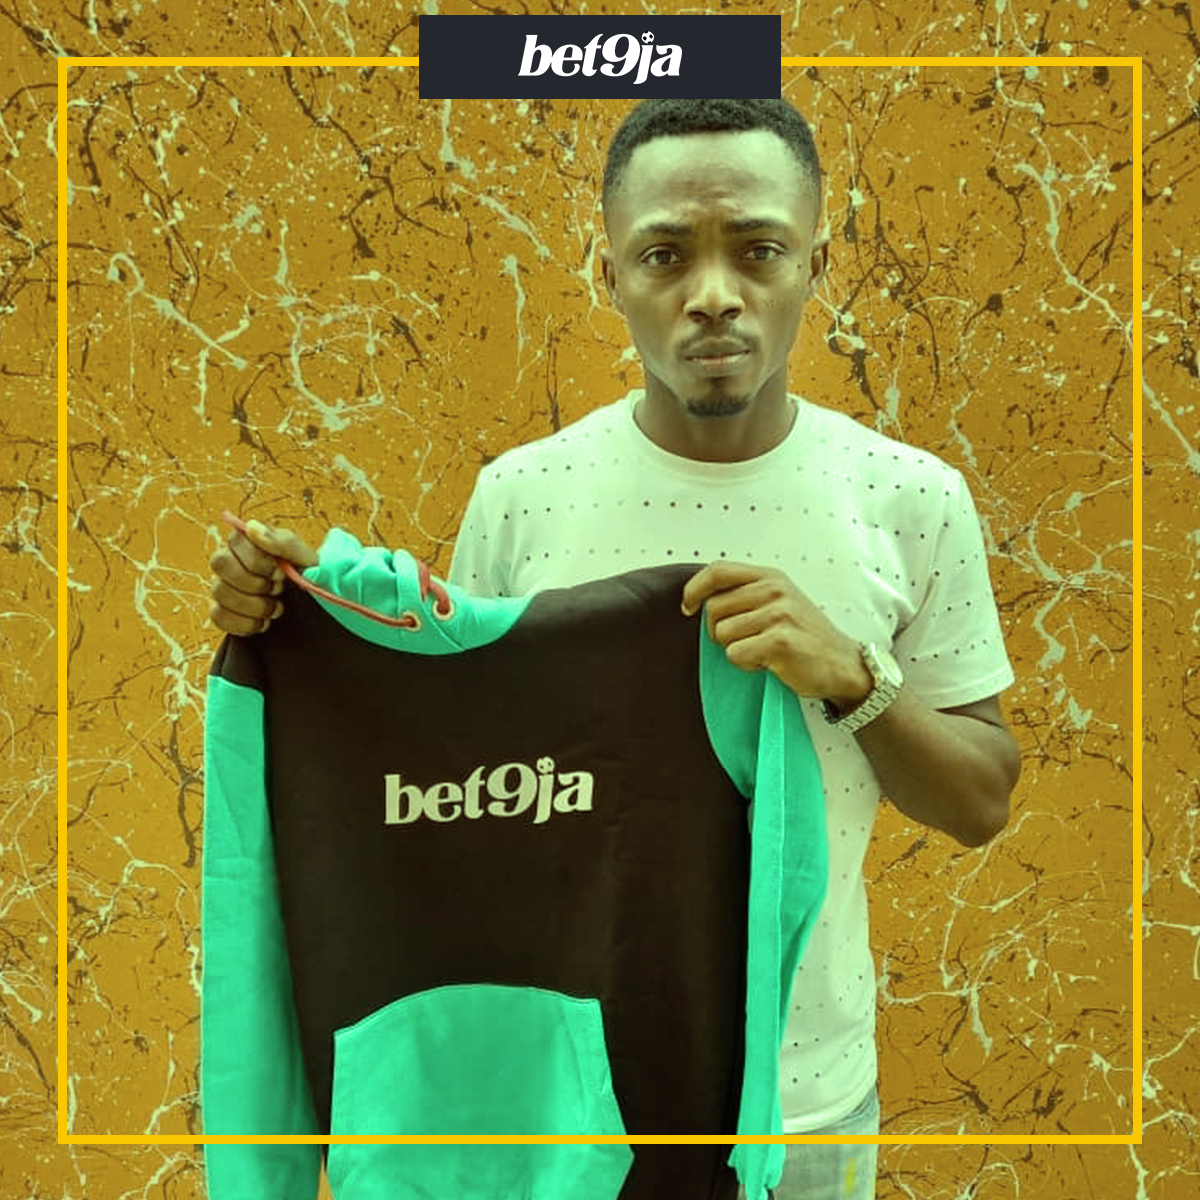 One of the winners from our #Bet9jaMNF campaign 😍 Be on the lookout for this weeks campaign and you can get your own #Bet9jaHoodie 🤸‍♂️